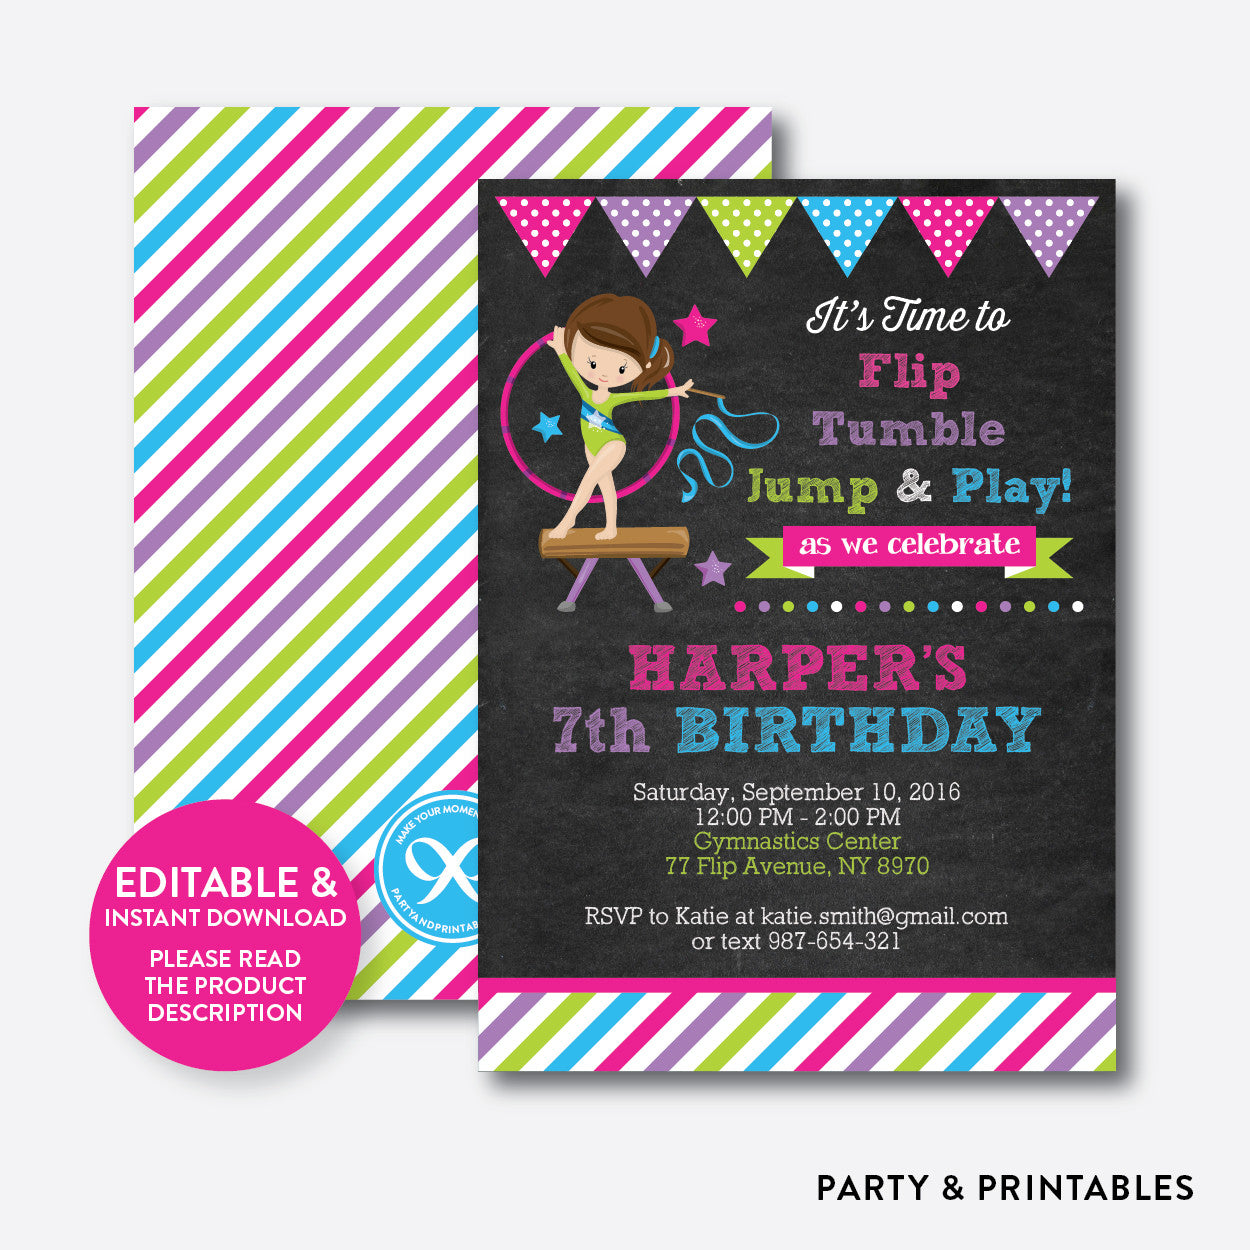 Gymnastics Chalkboard Kids Birthday Invitation / Editable / Instant Download (CKB.466), invitation - Party and Printables